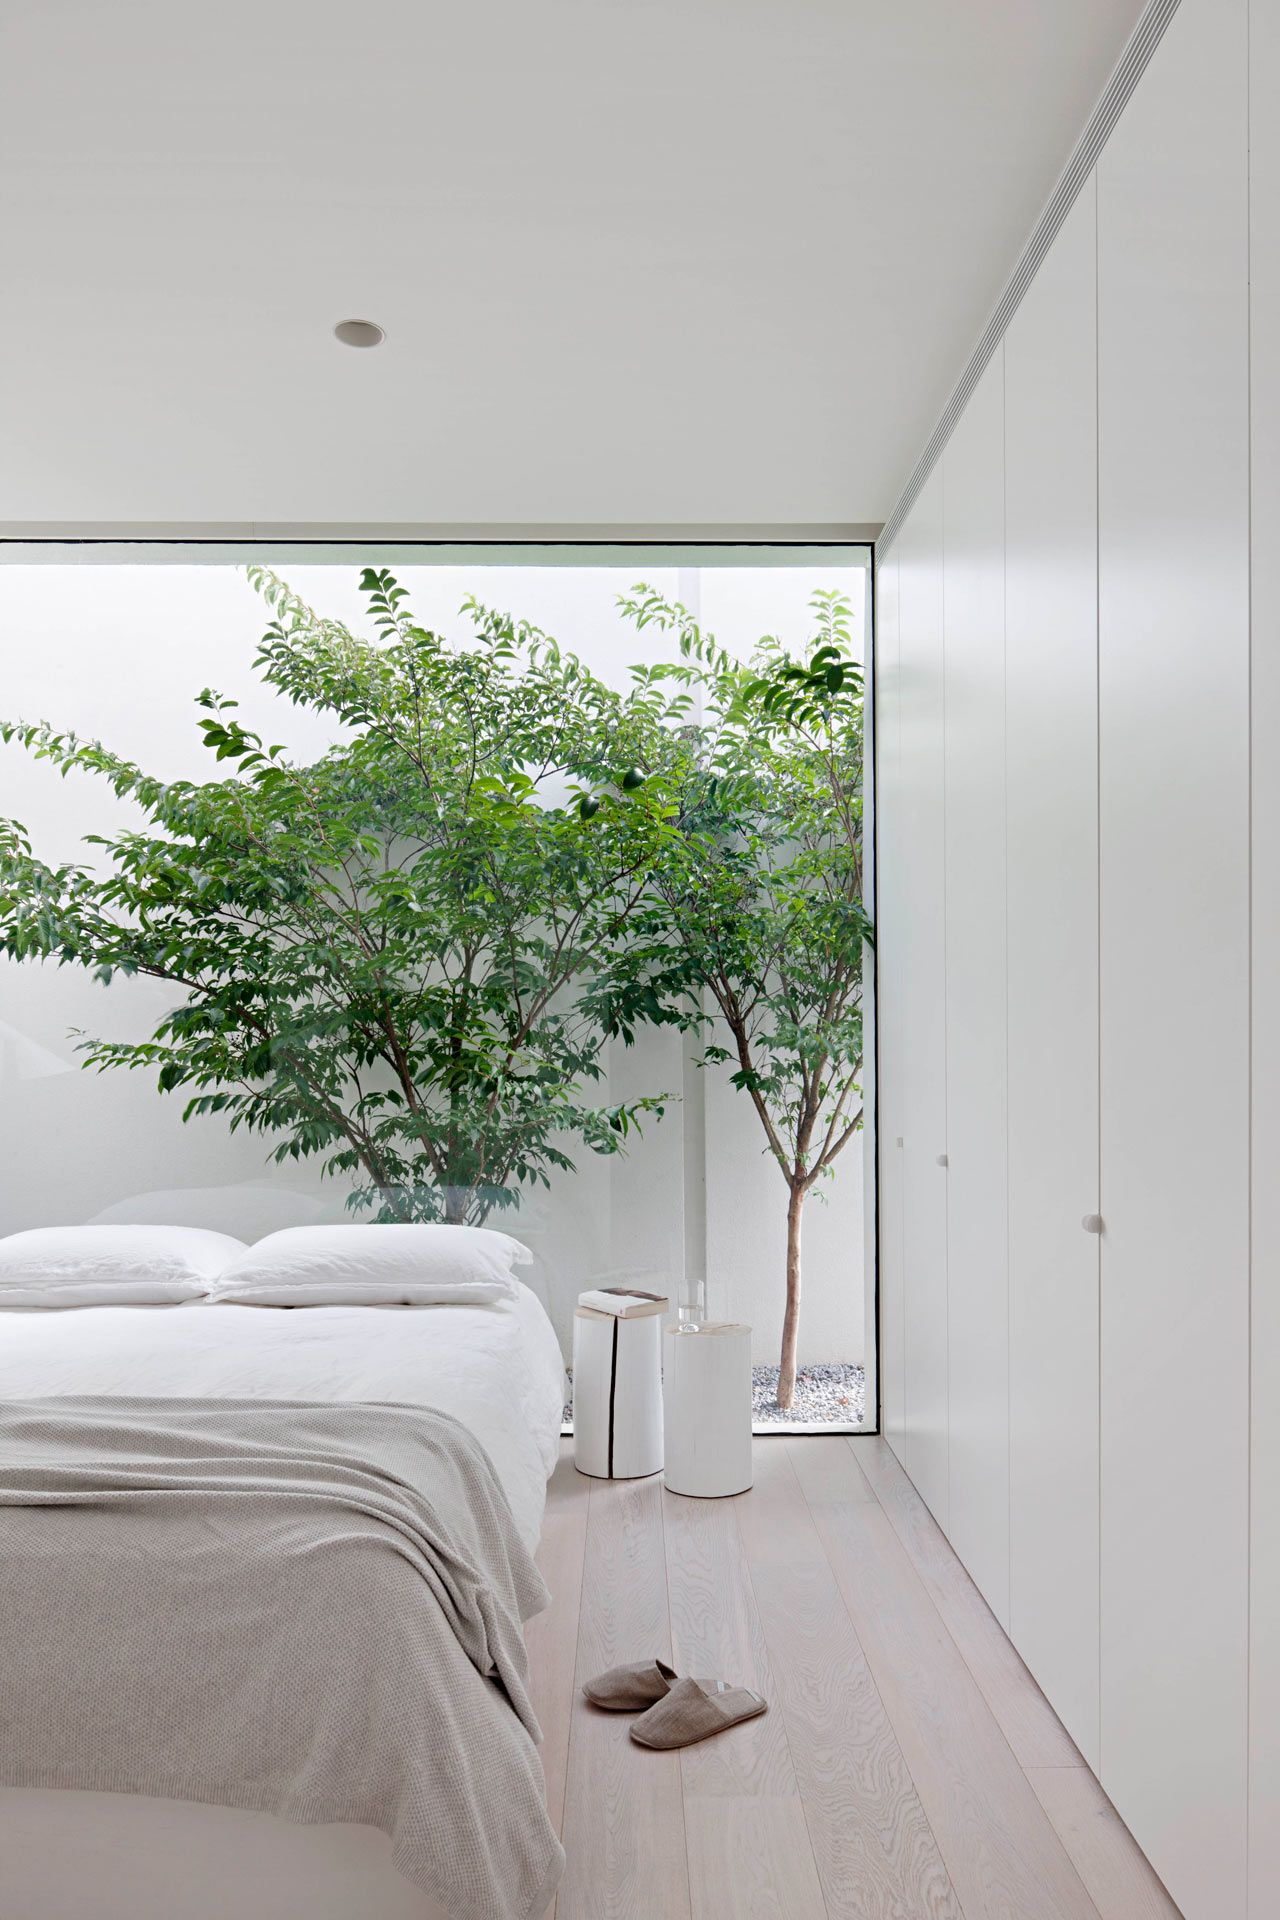 Bourne Road Residence Is A Minimalist House Located In Vic,